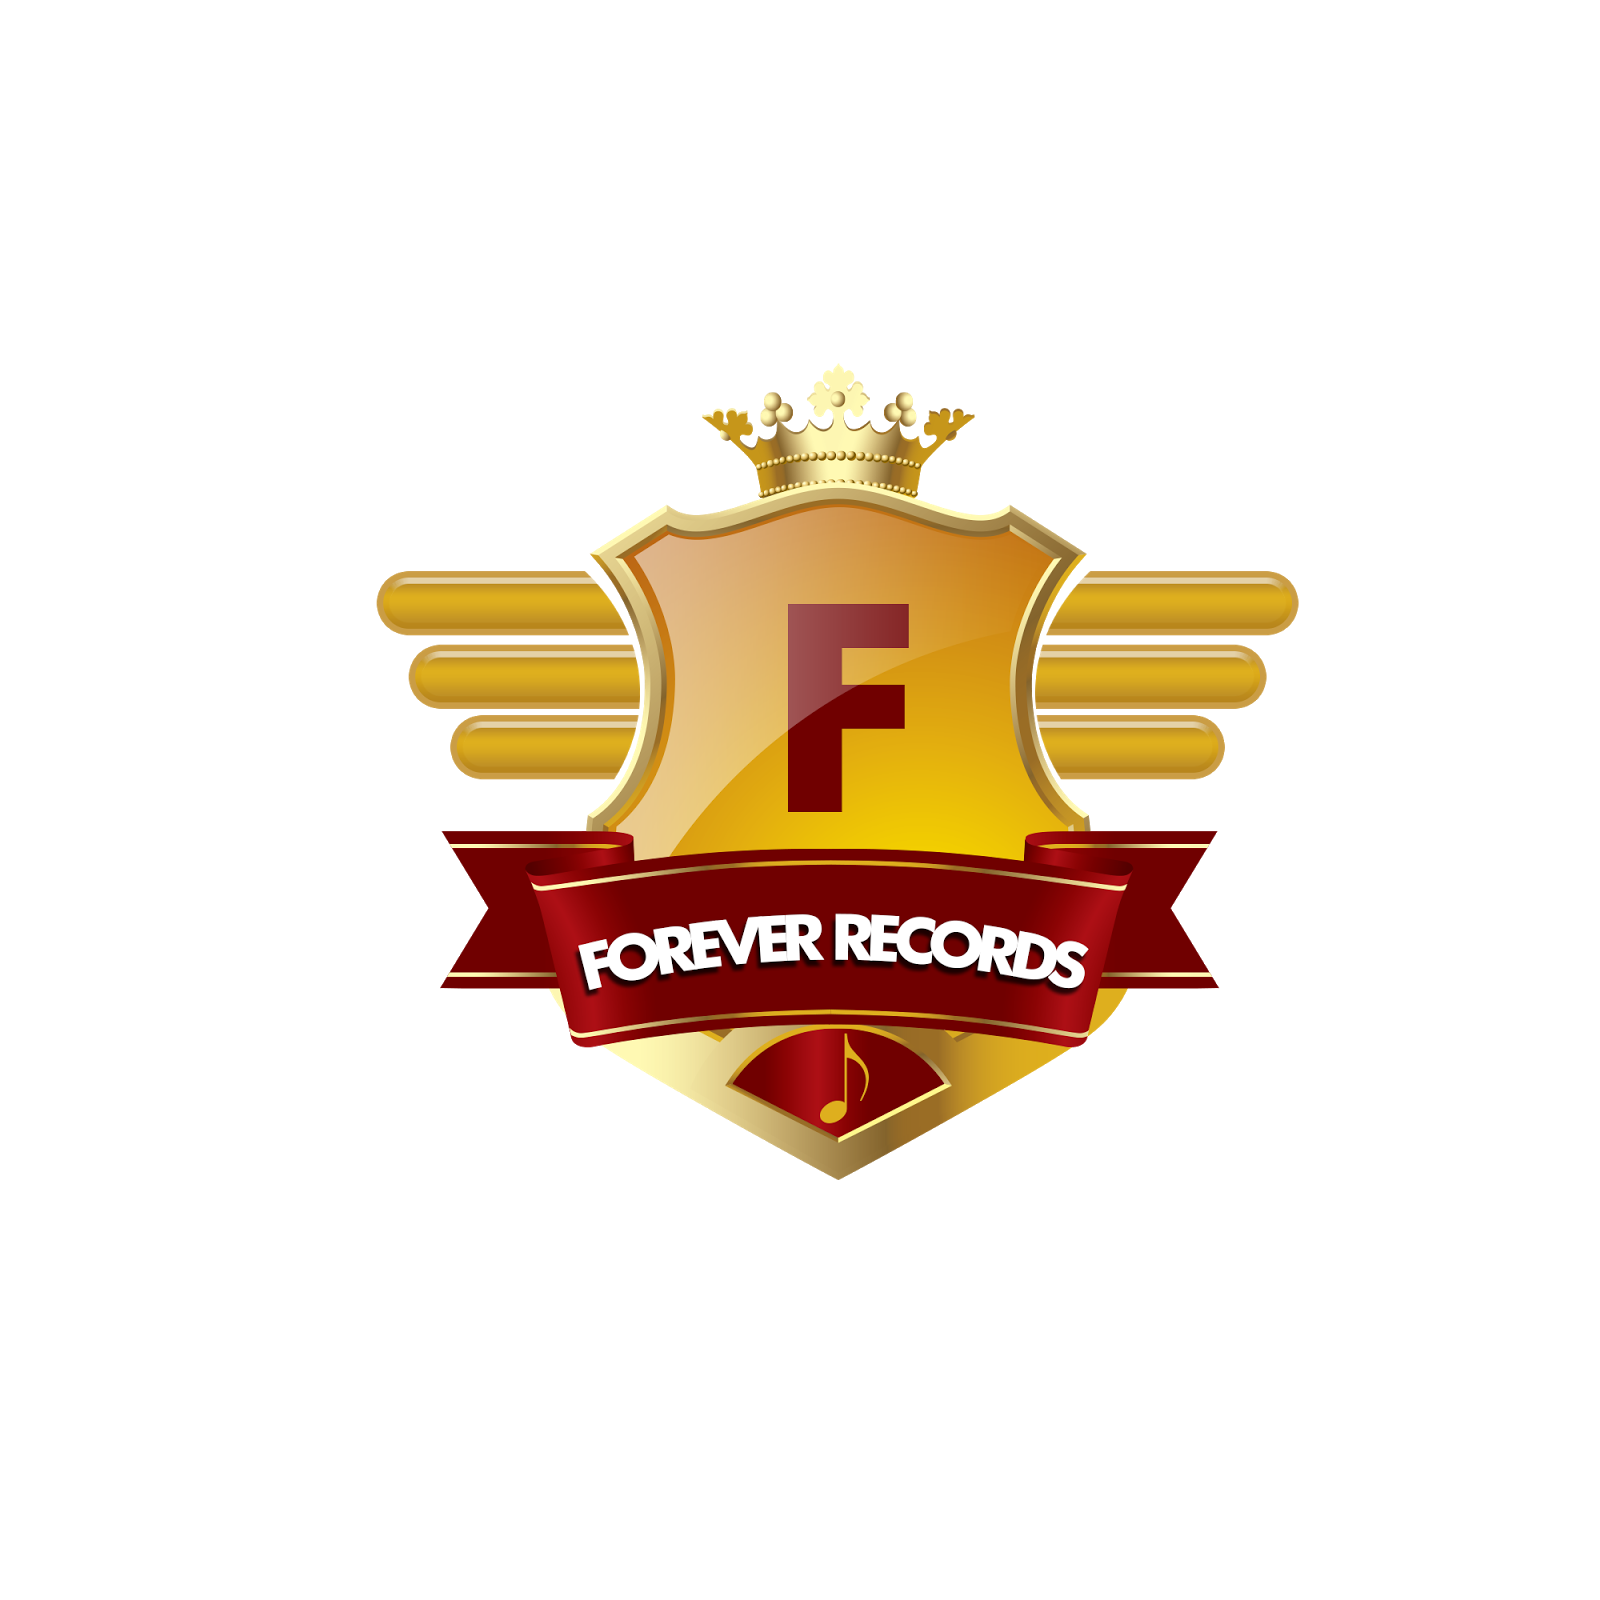 forever records